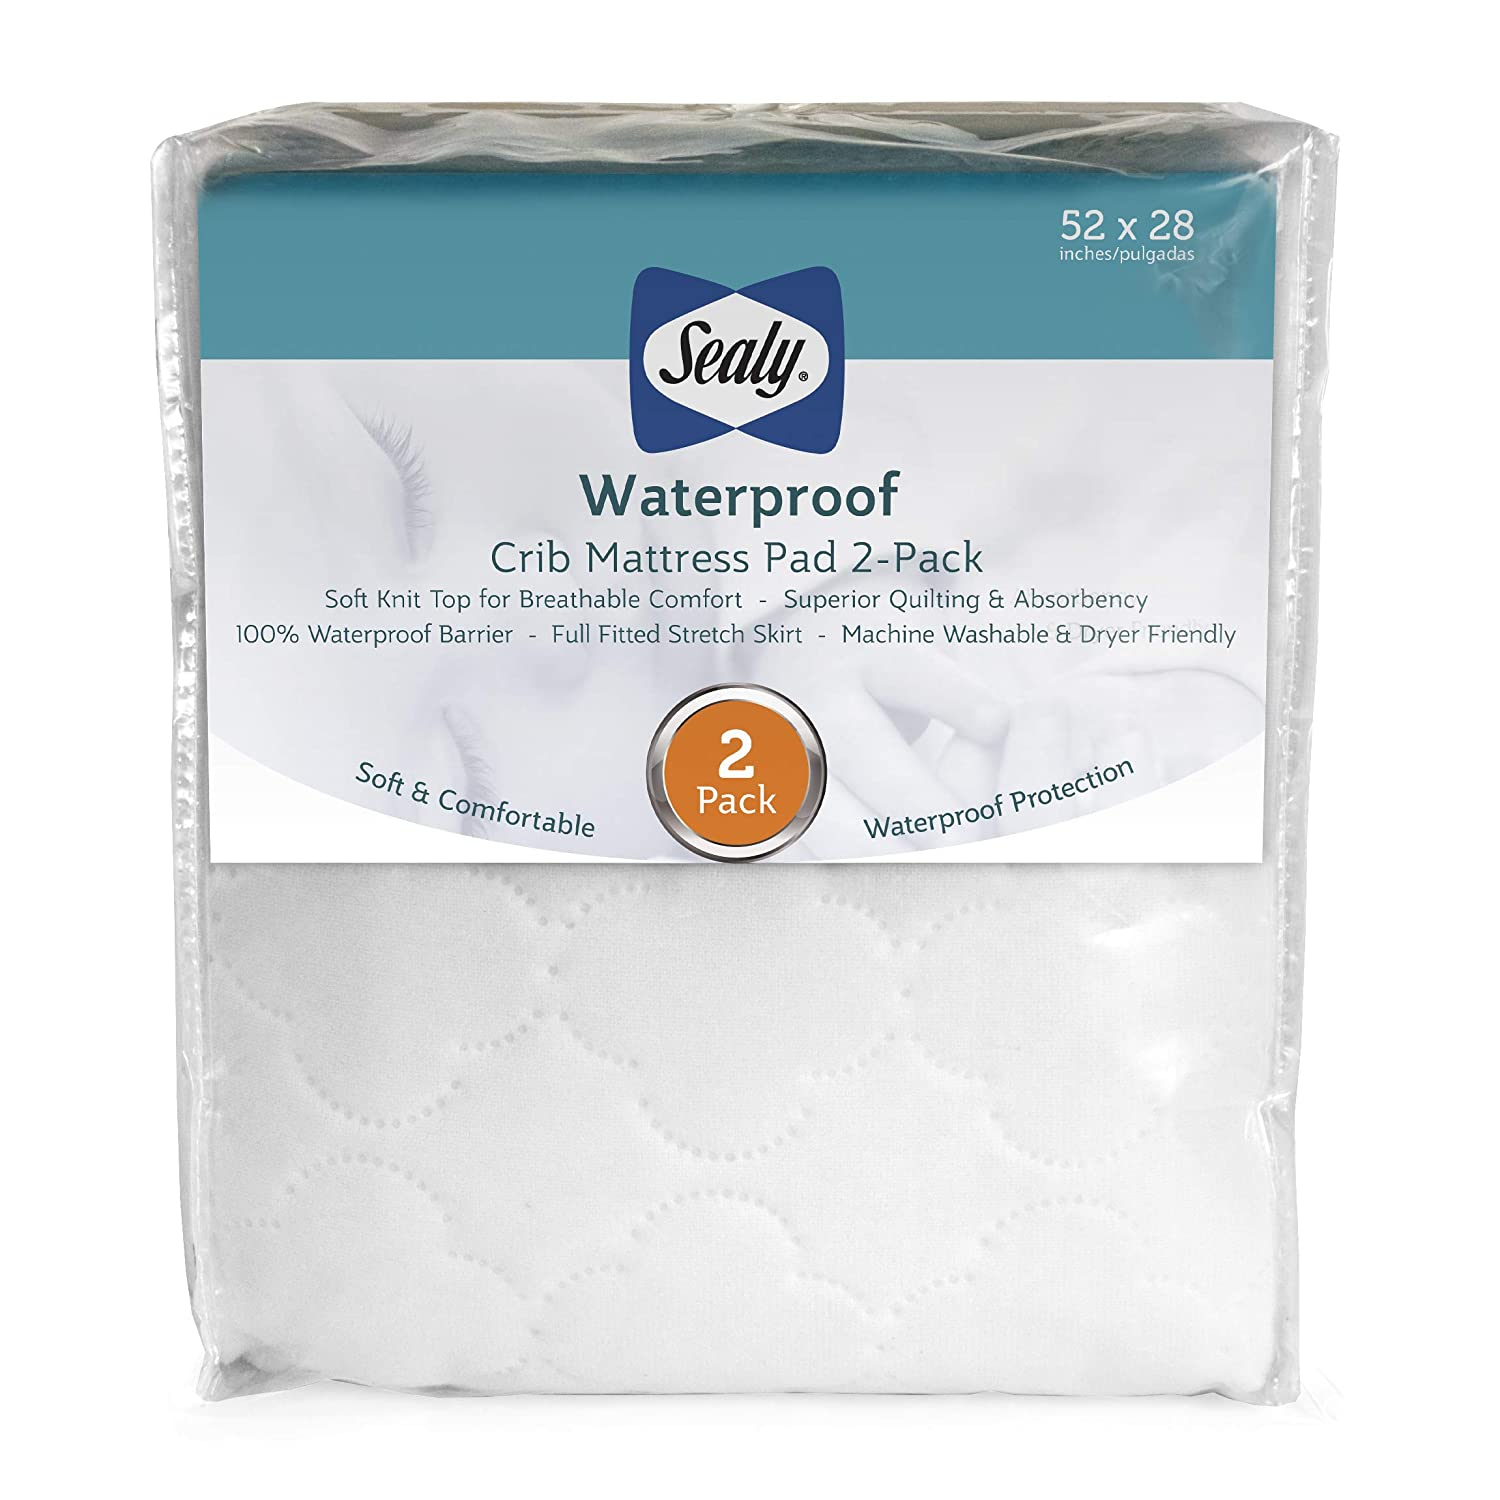 Best waterproof crib mattress pad 2 pack